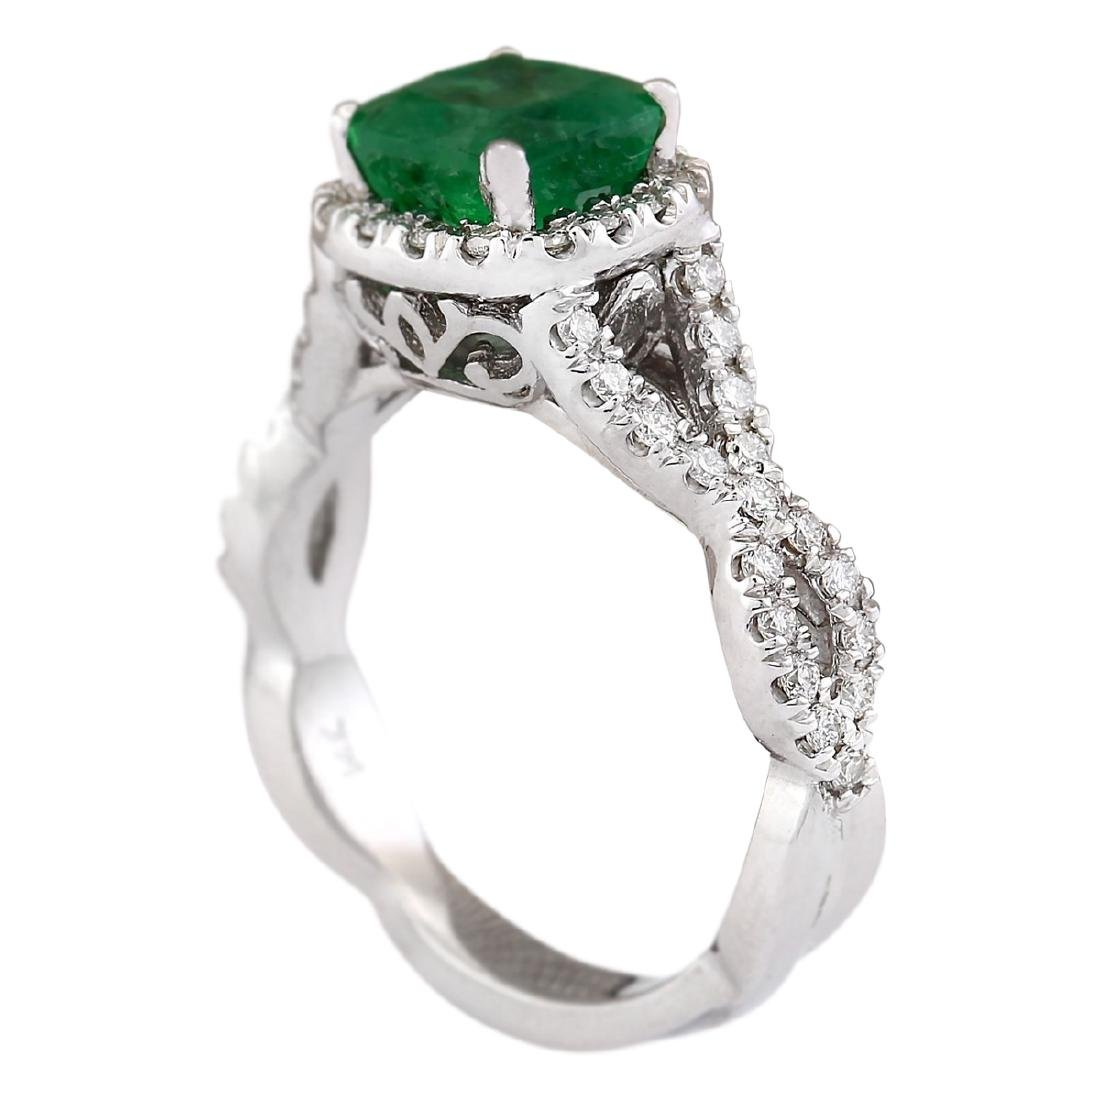 2.49 CTW Natural Emerald And Diamond Ring In 18K White - 3